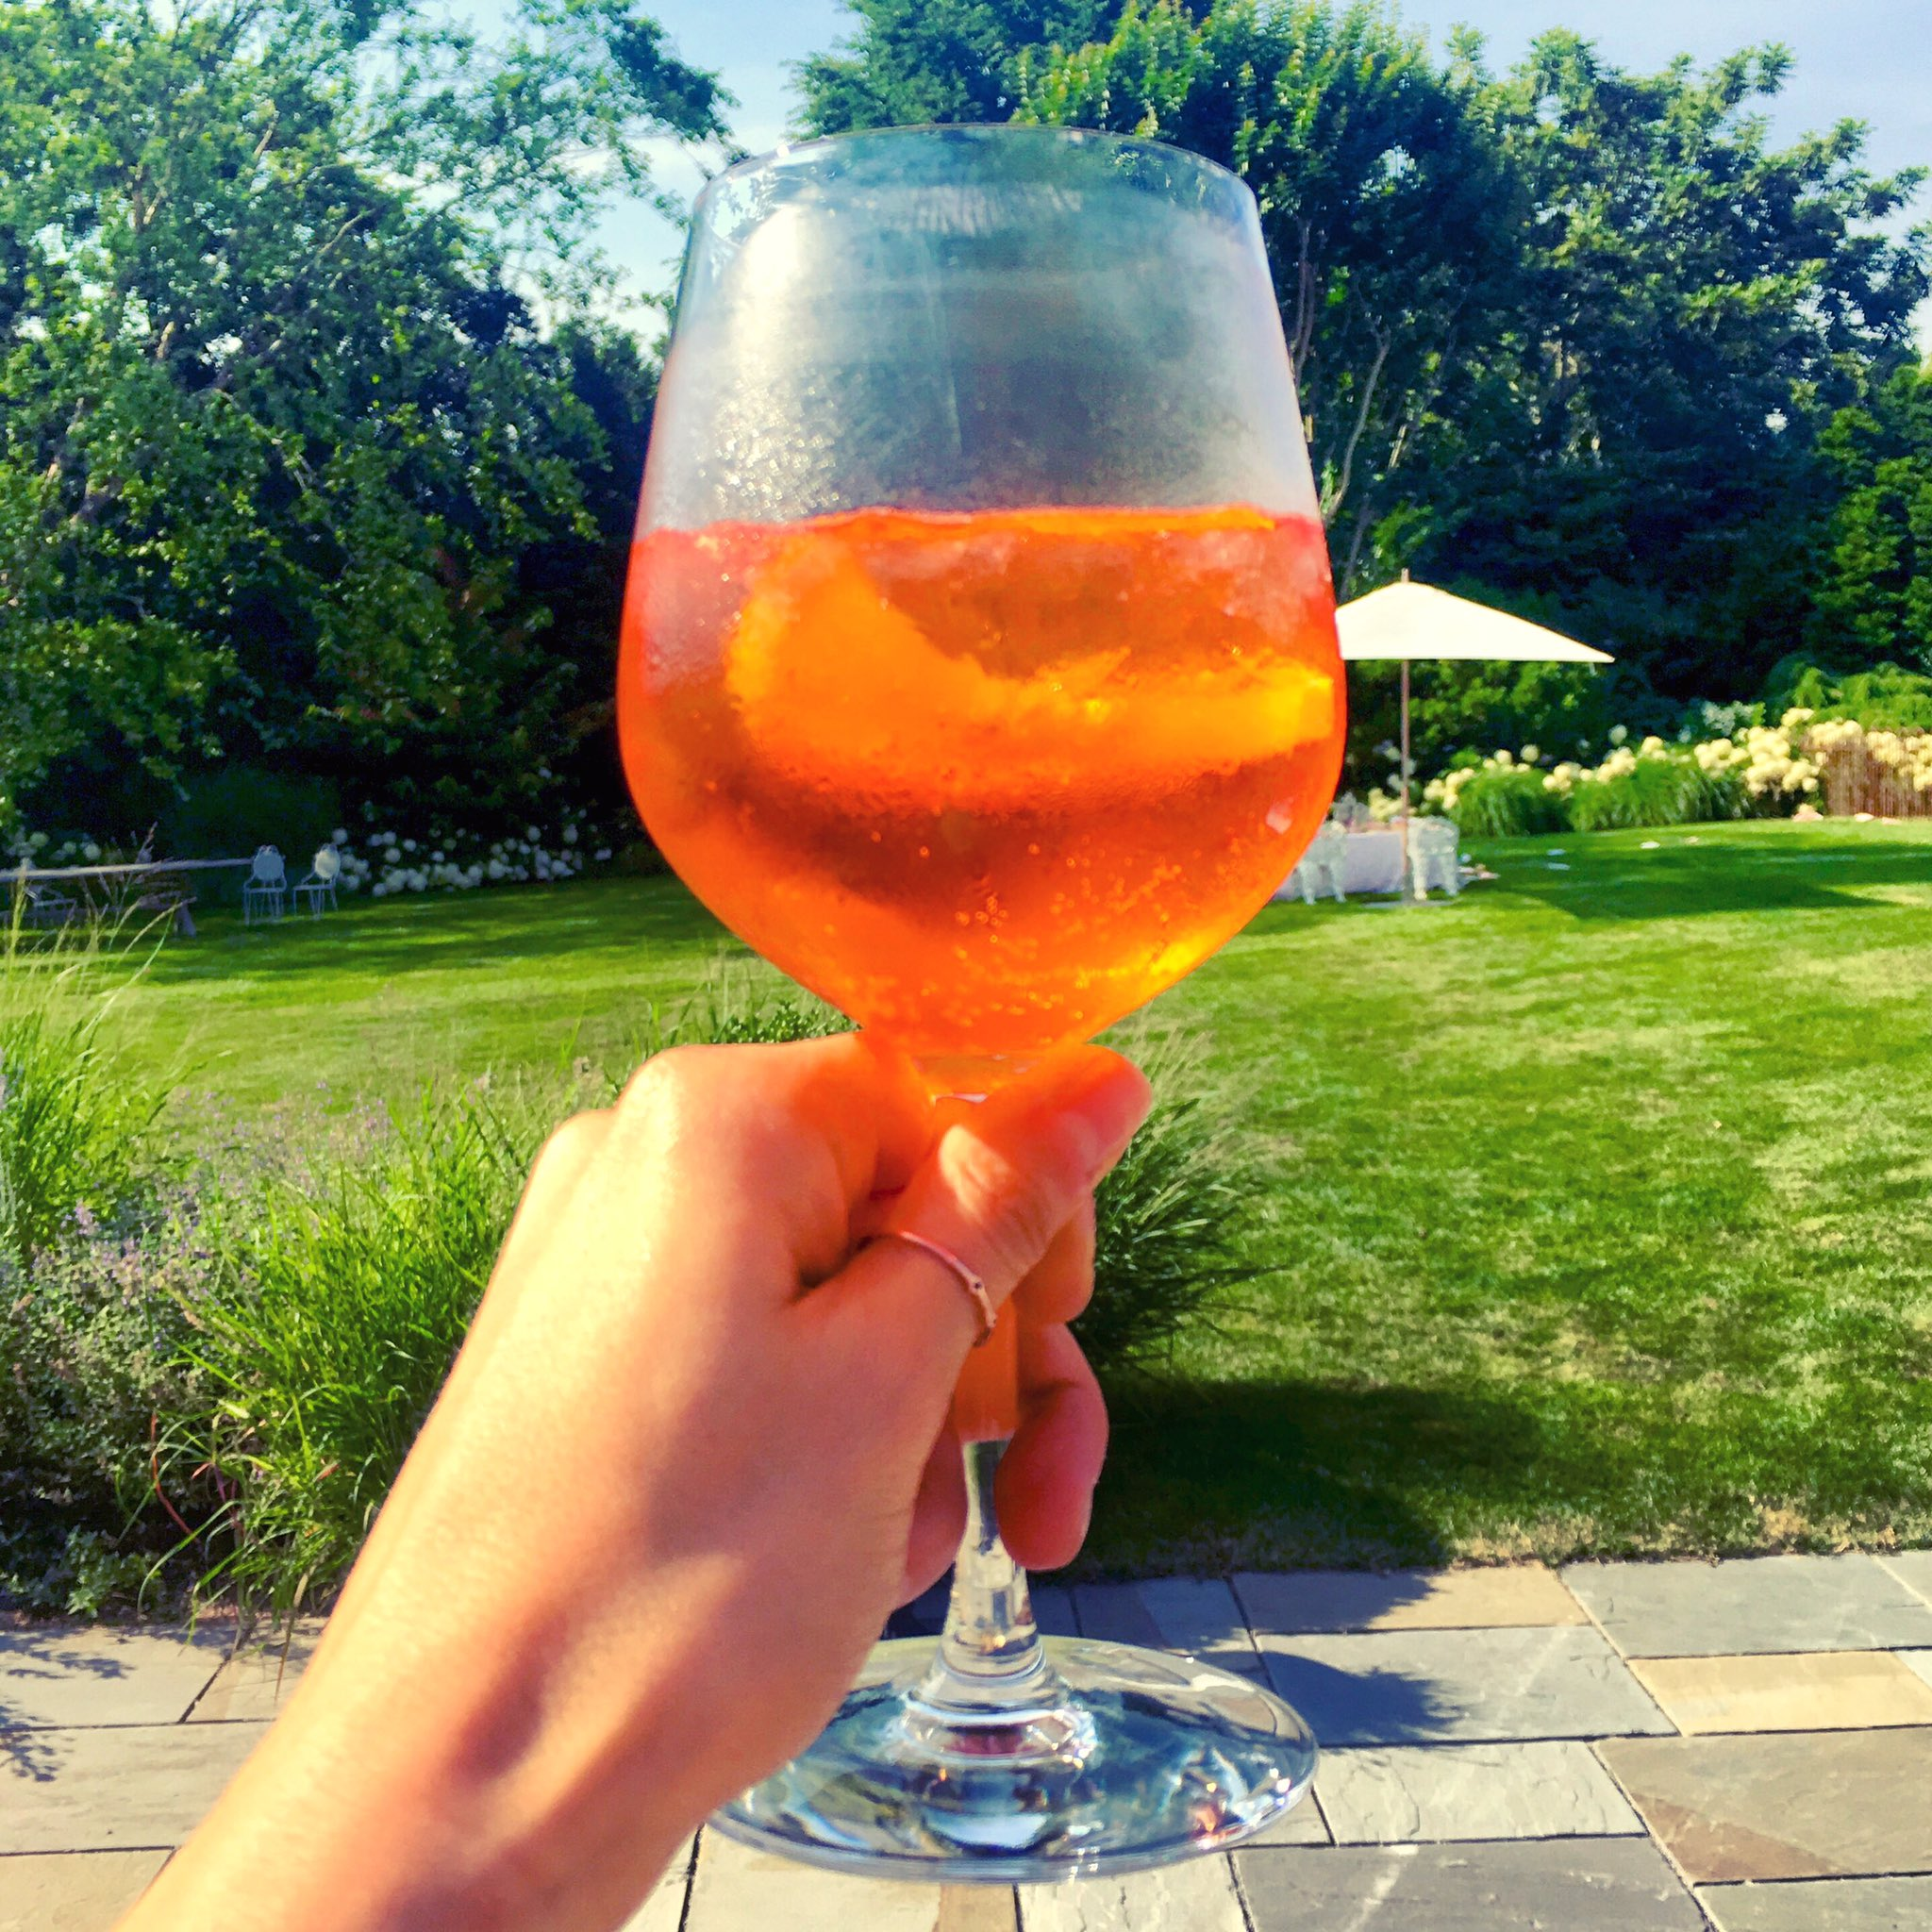 cheers y'all 🥂 #weekendvibes #spritz #hamptons https://t.co/8ONBiYalFe